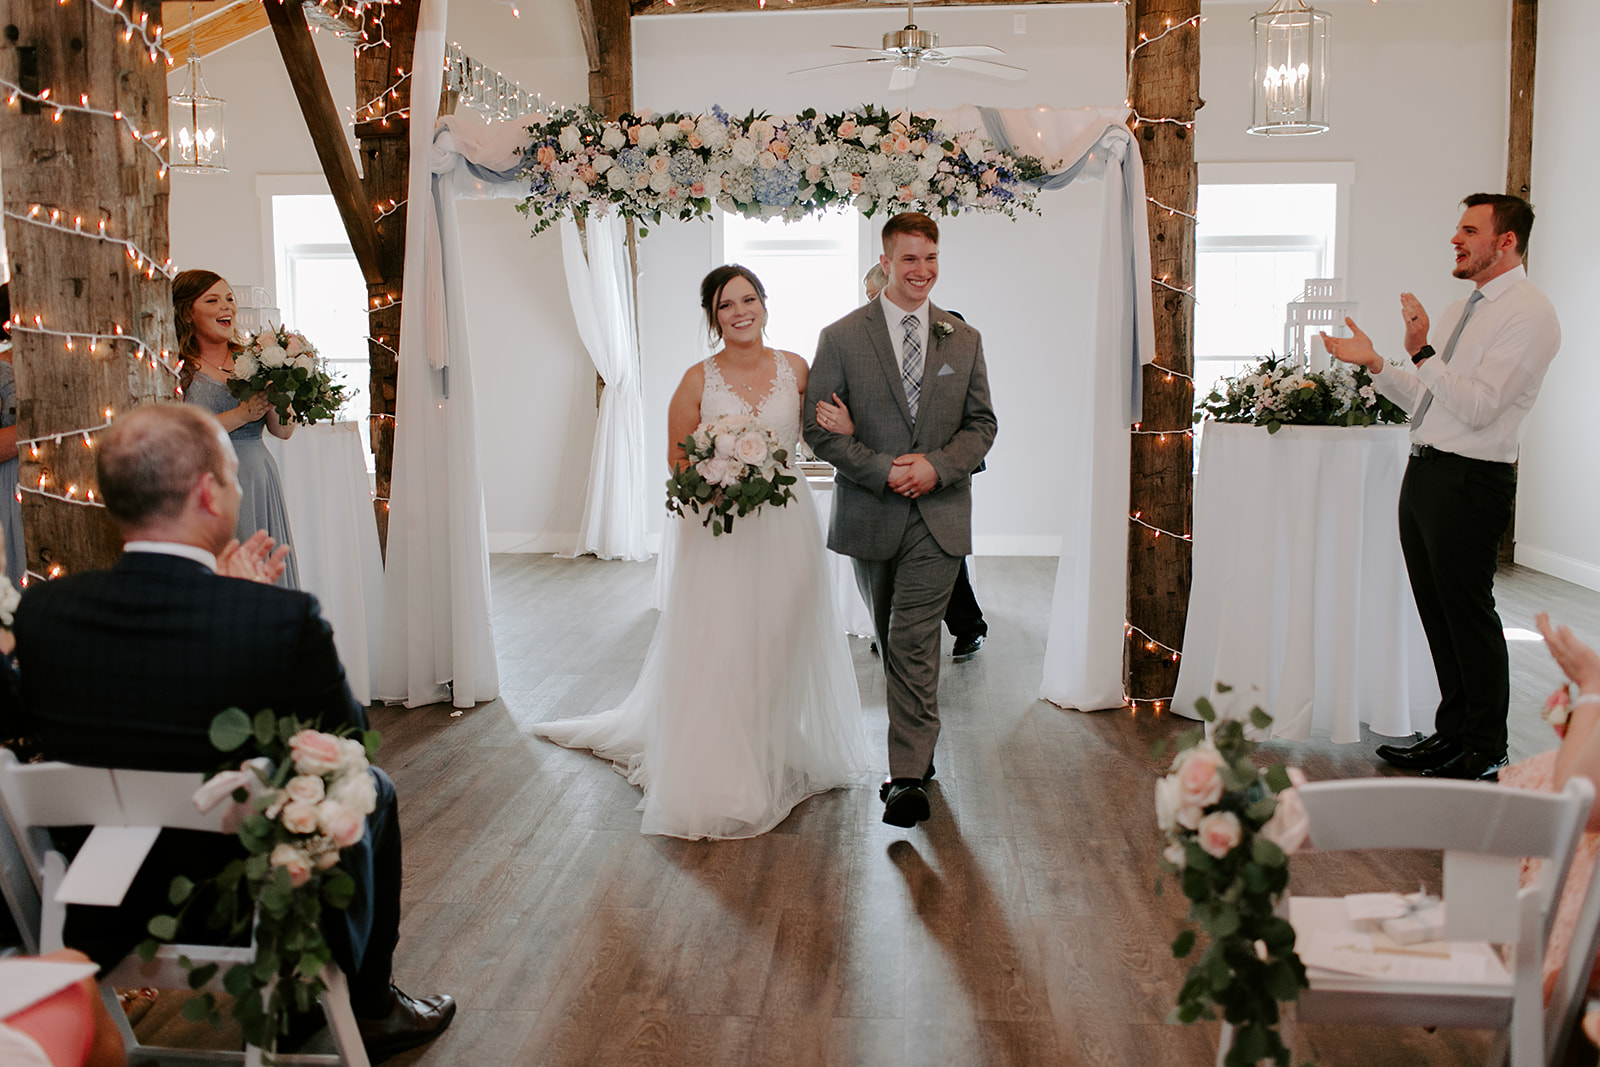 Kendra_and_Mattew_Indiana_Wedding_by_Emily_Wehner-609.jpg